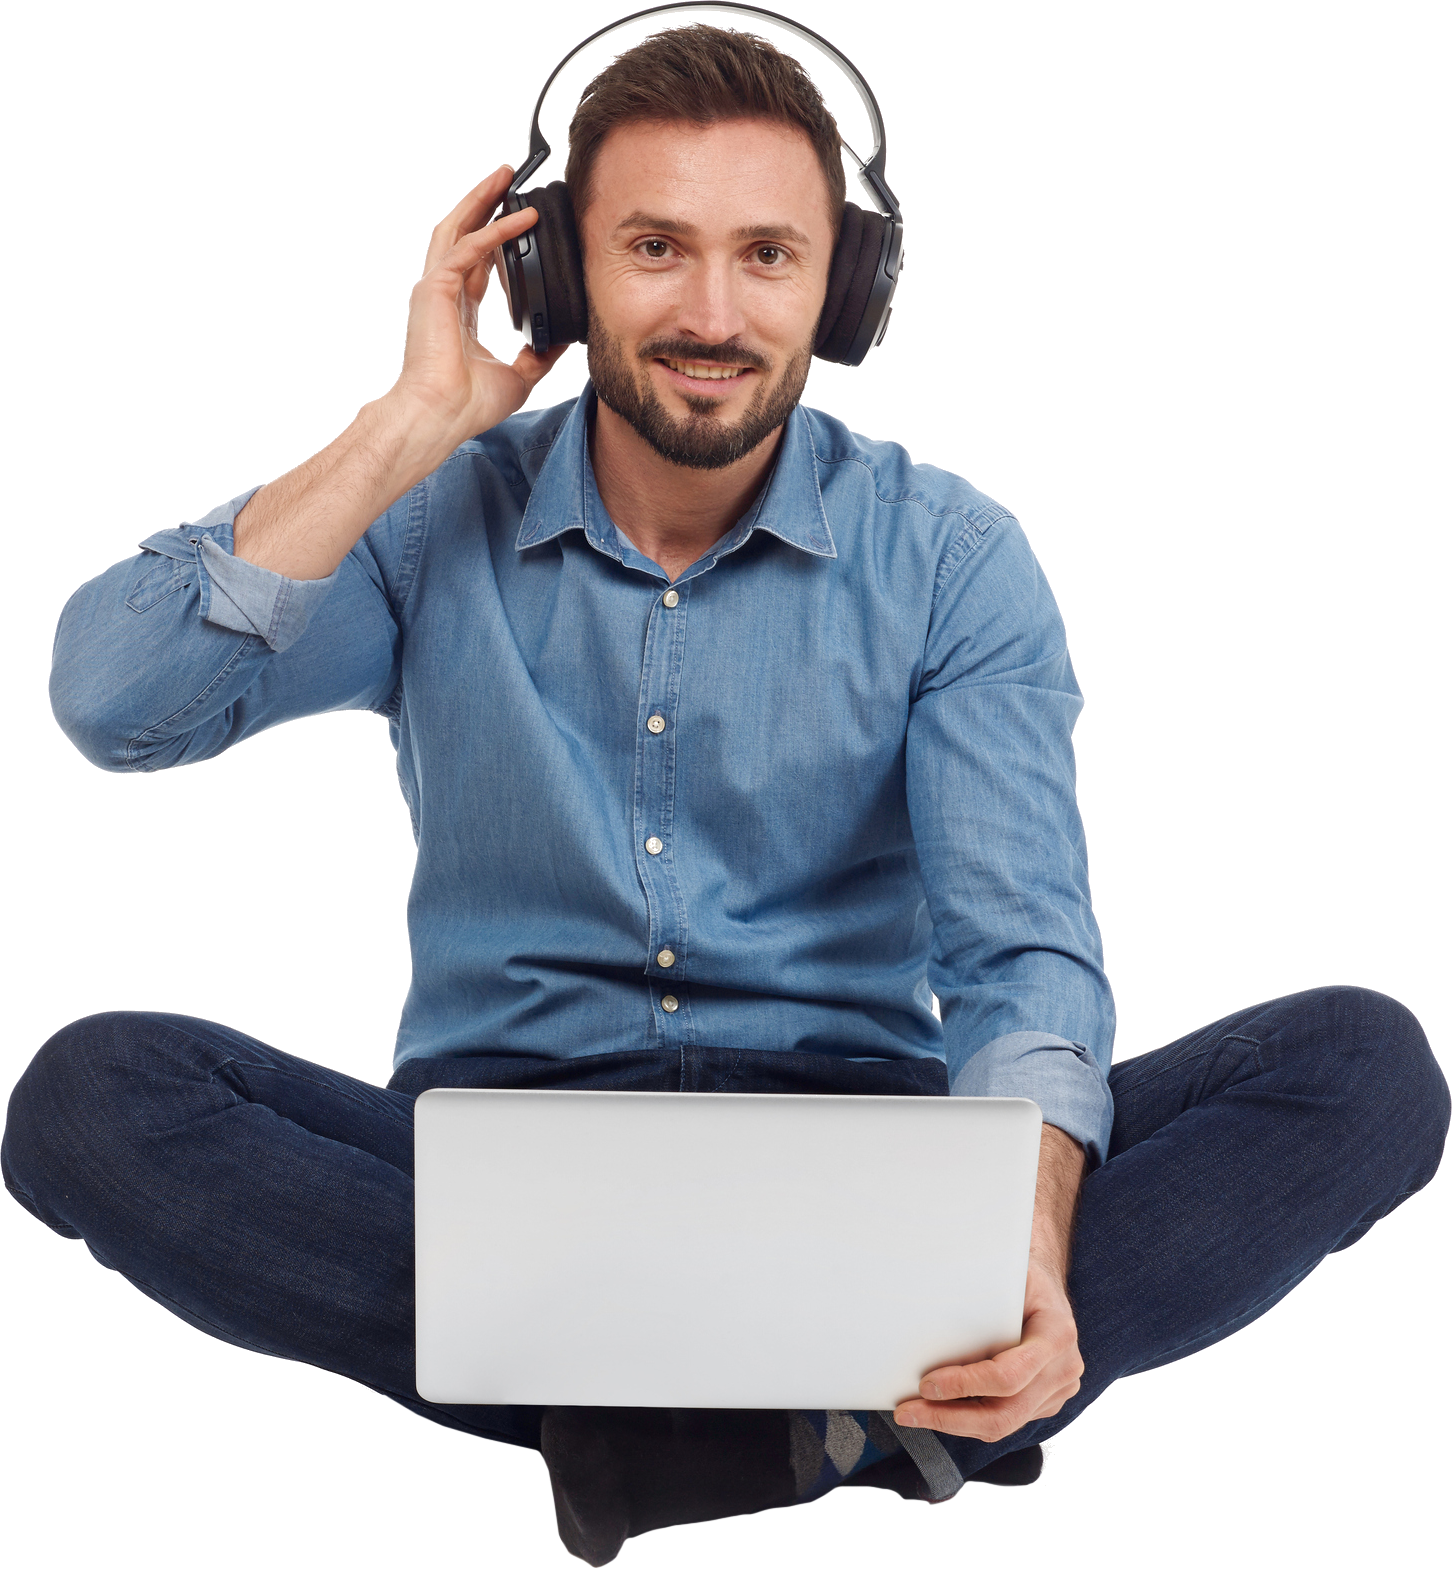 Man sitting crossed legged with headphones one and holding his laptop